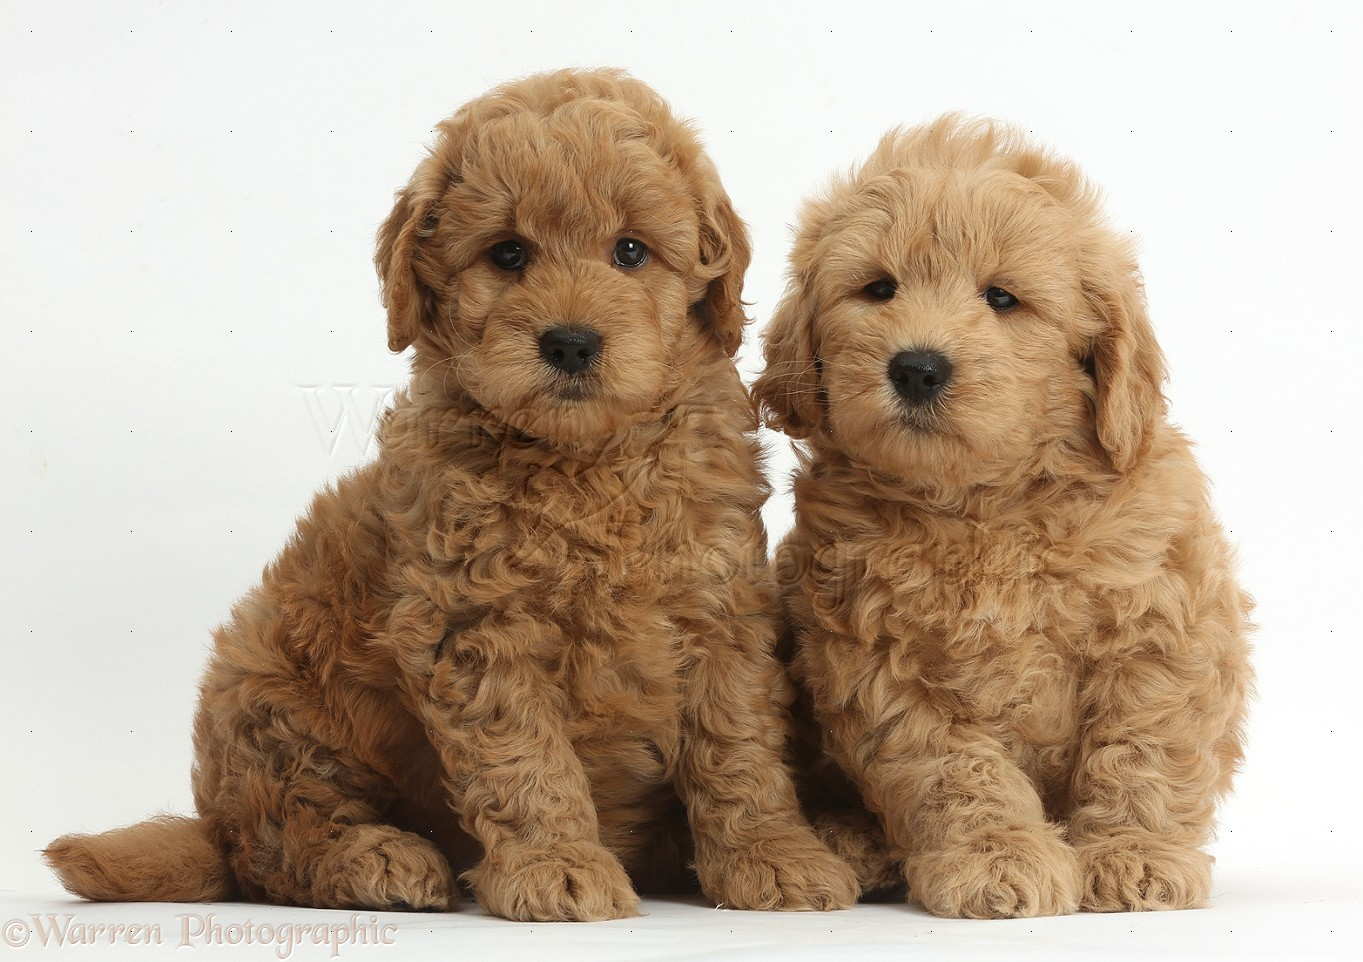 Dogs Cute F1b Goldendoodle Puppies Photo Wp37273